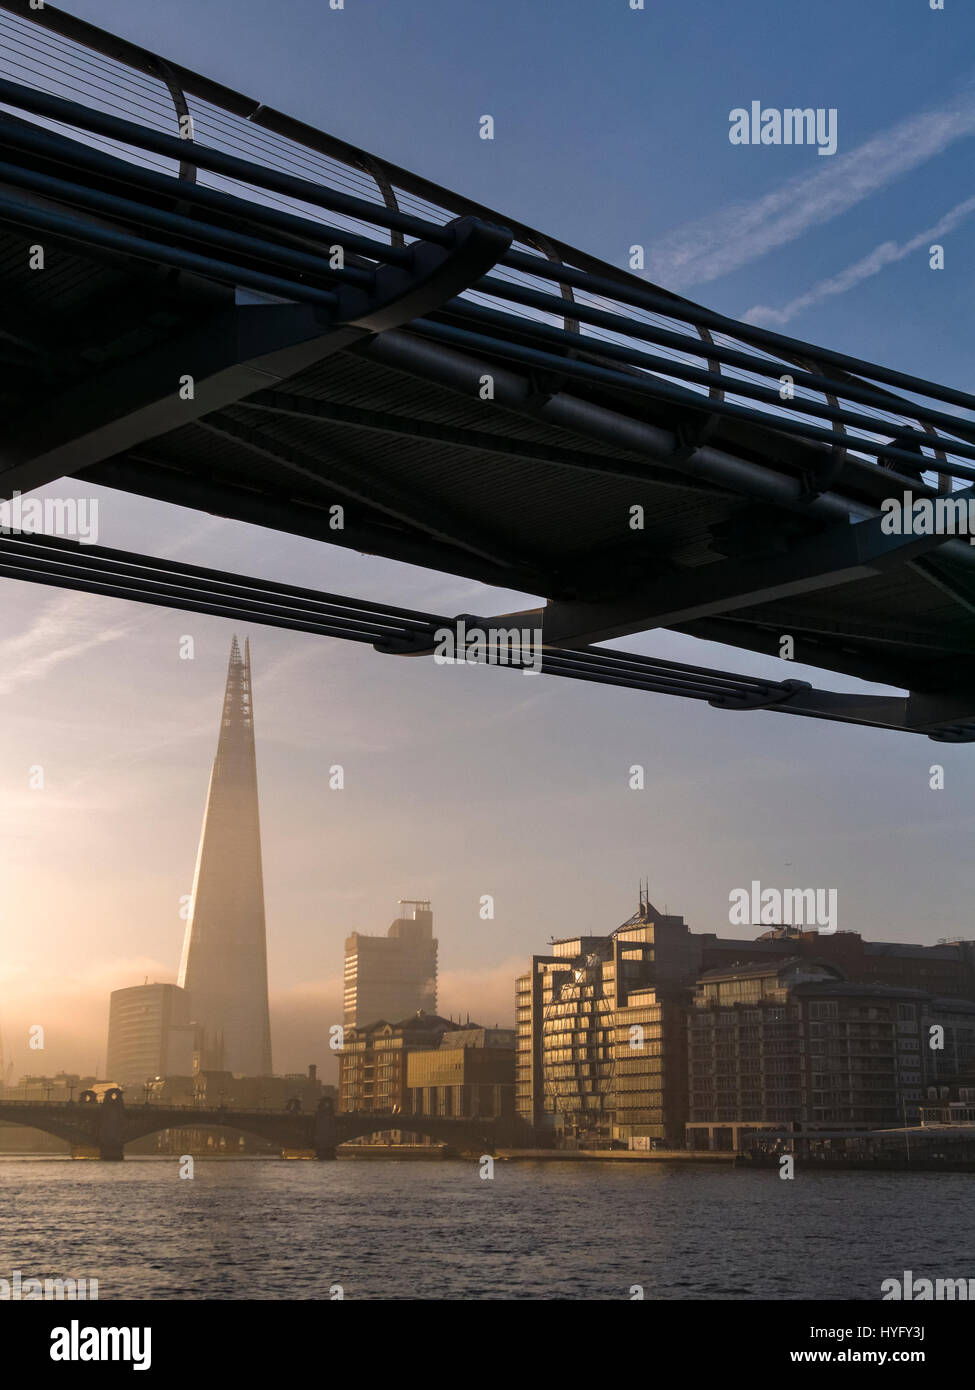 Sunrise over The Shard Building and River Thames, London. Stock Photo